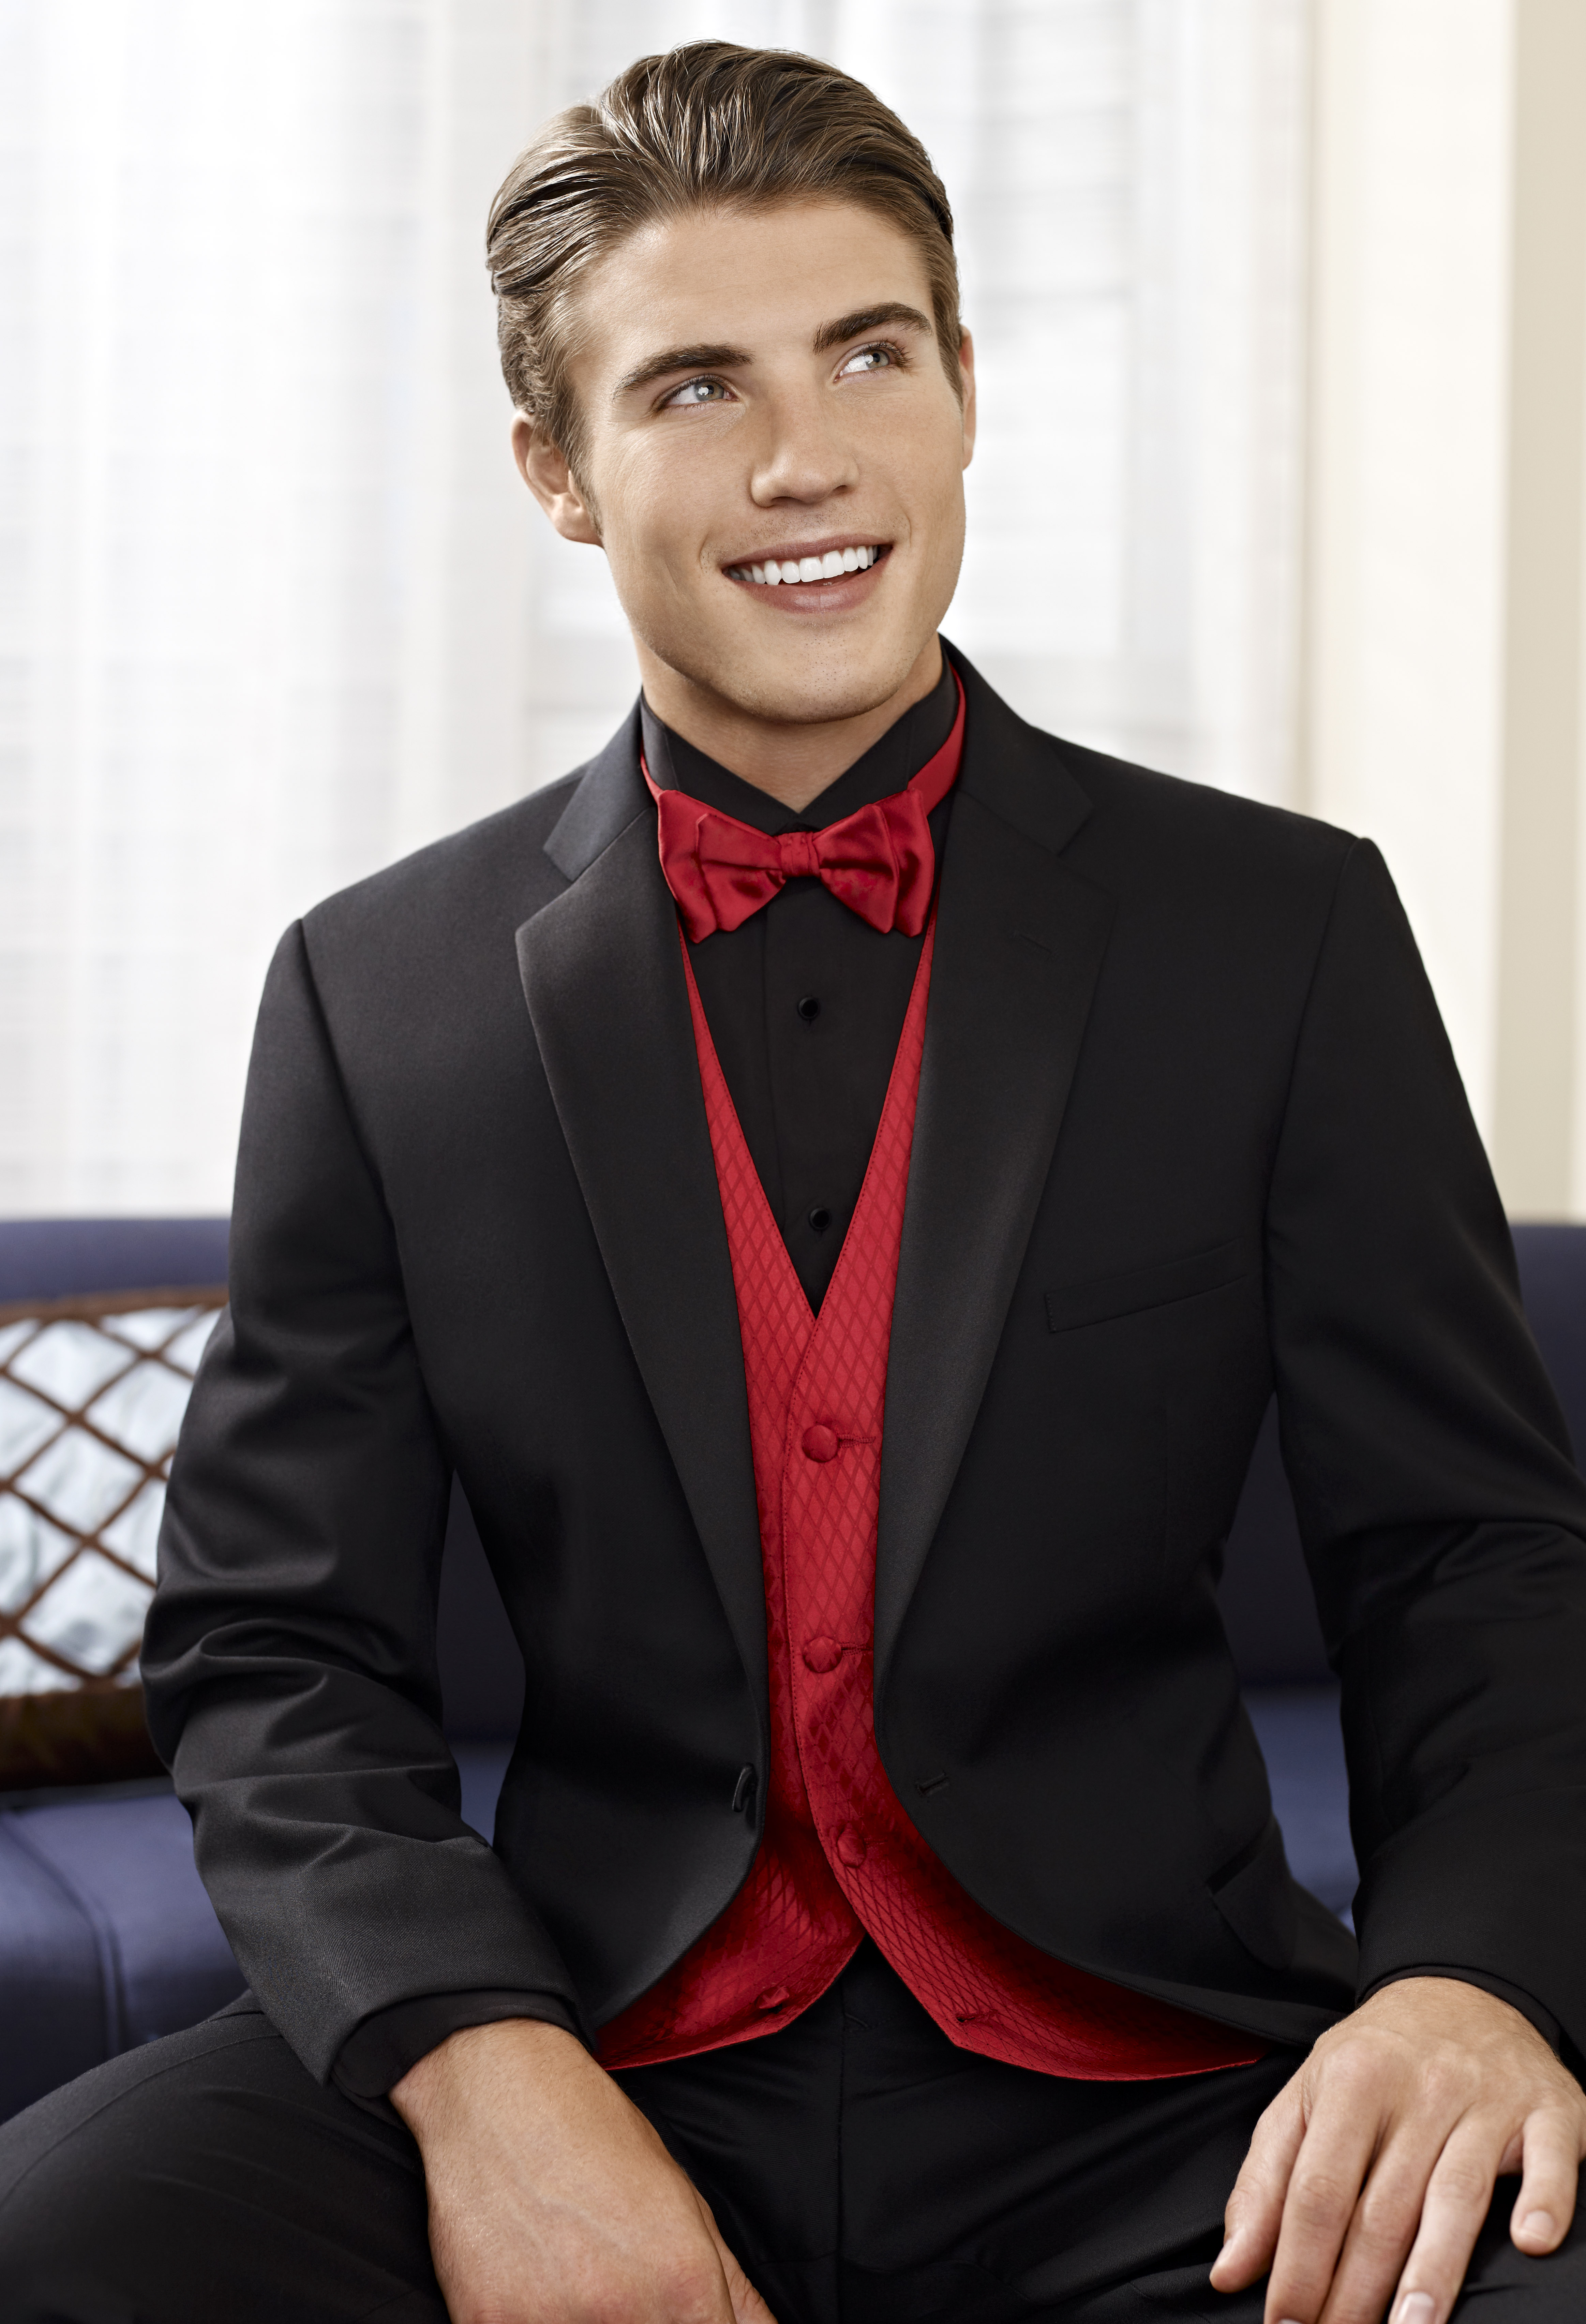 Jean Yves Fitted One Button Tuxedo : Formal Dimensions